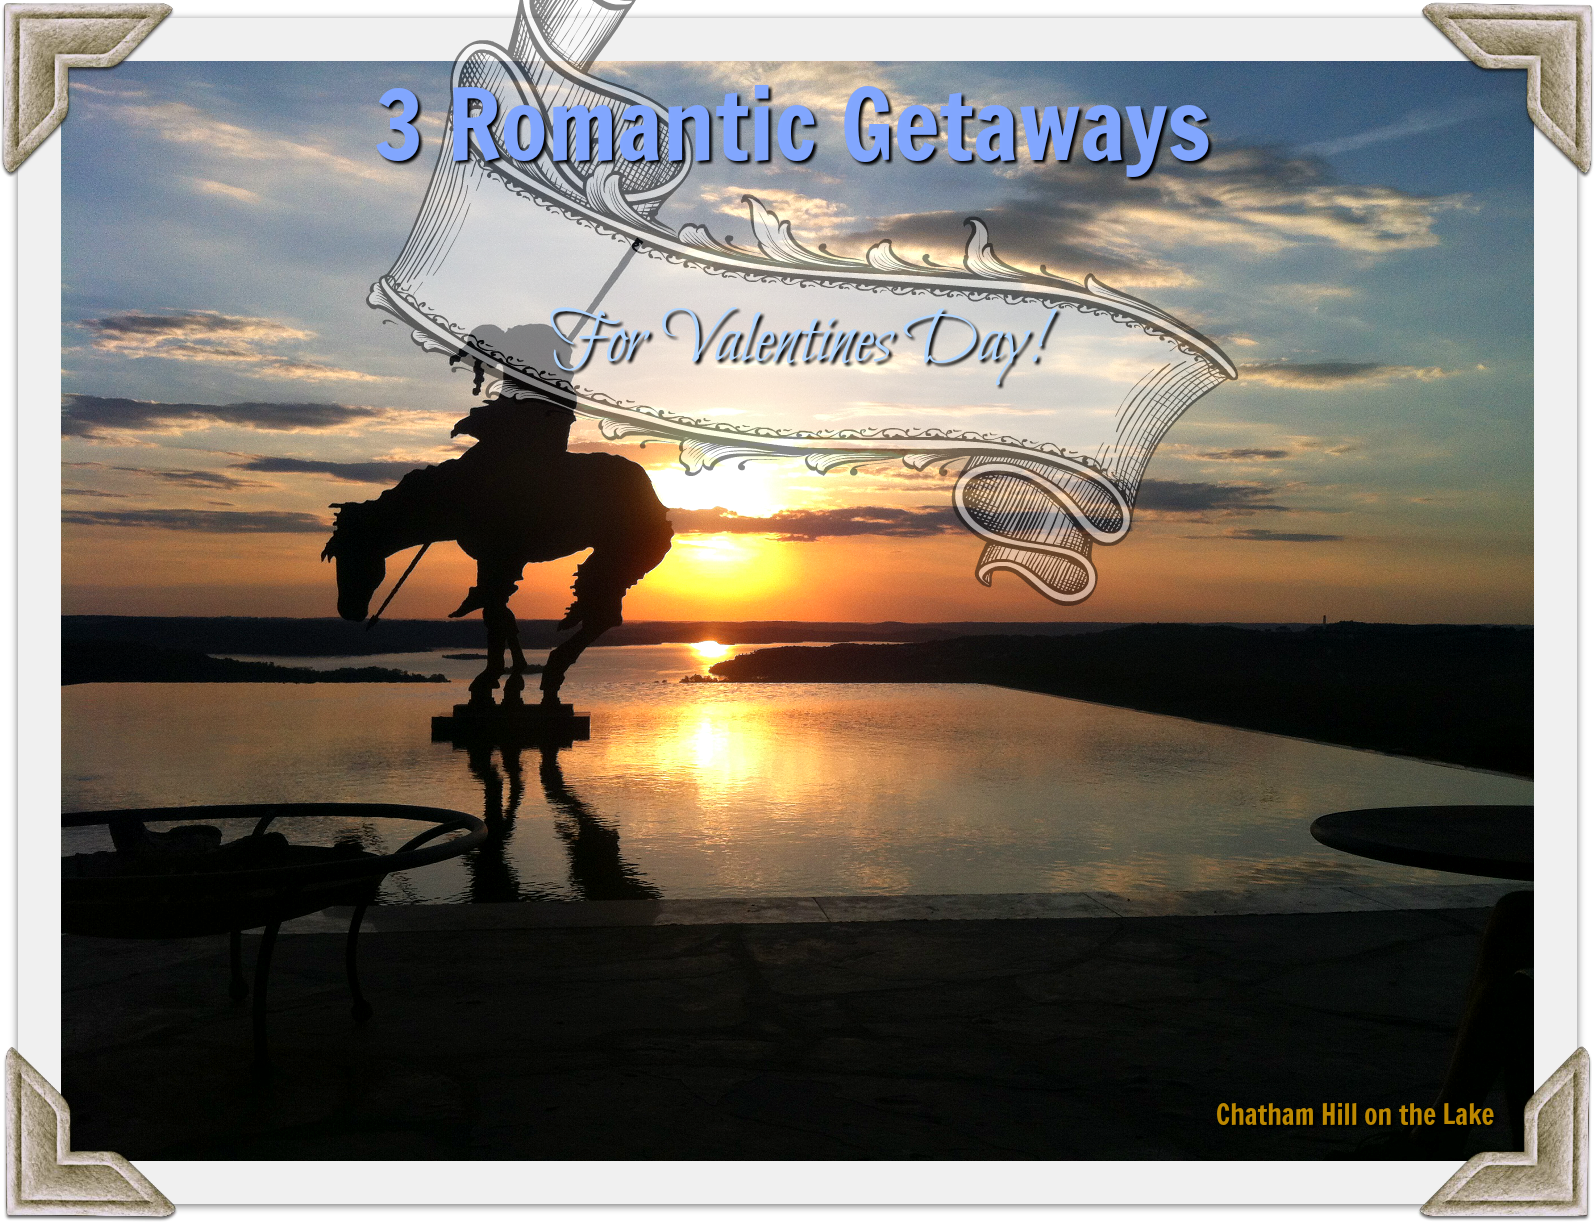 3 Romantic Getaways for Valentines Day at ChathamHillonthelake.com